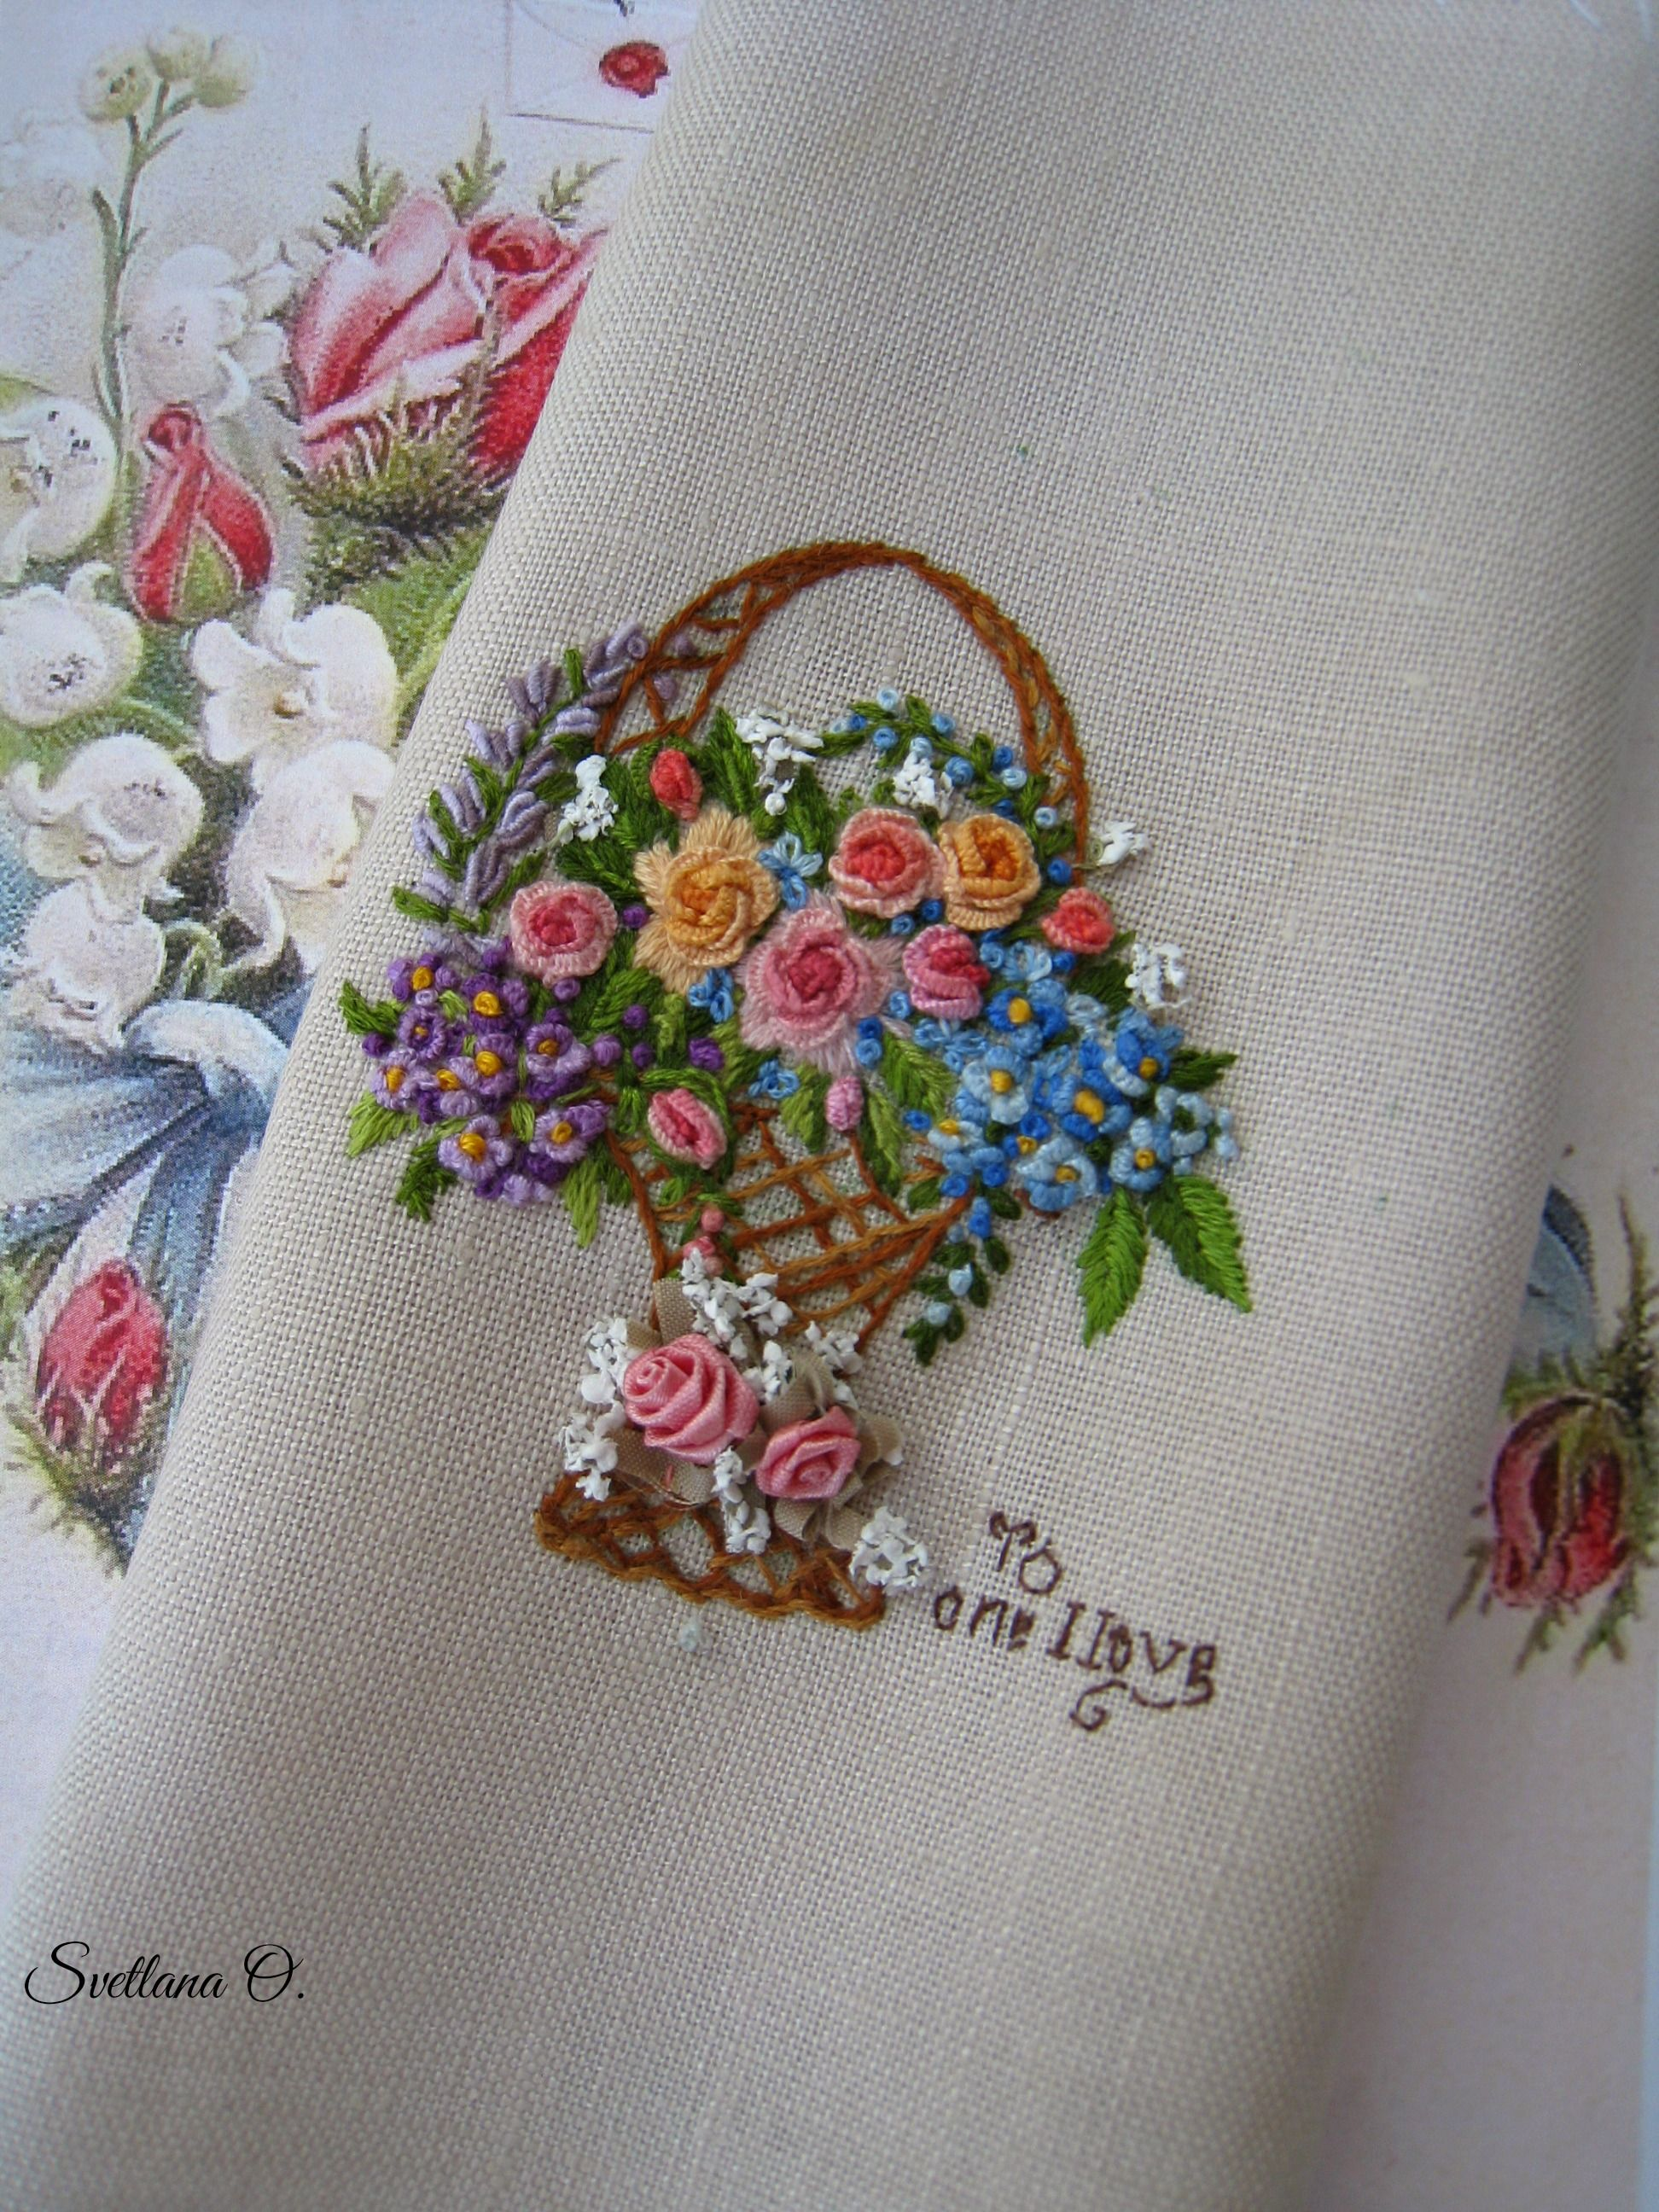 Embroidery, bullion stitch